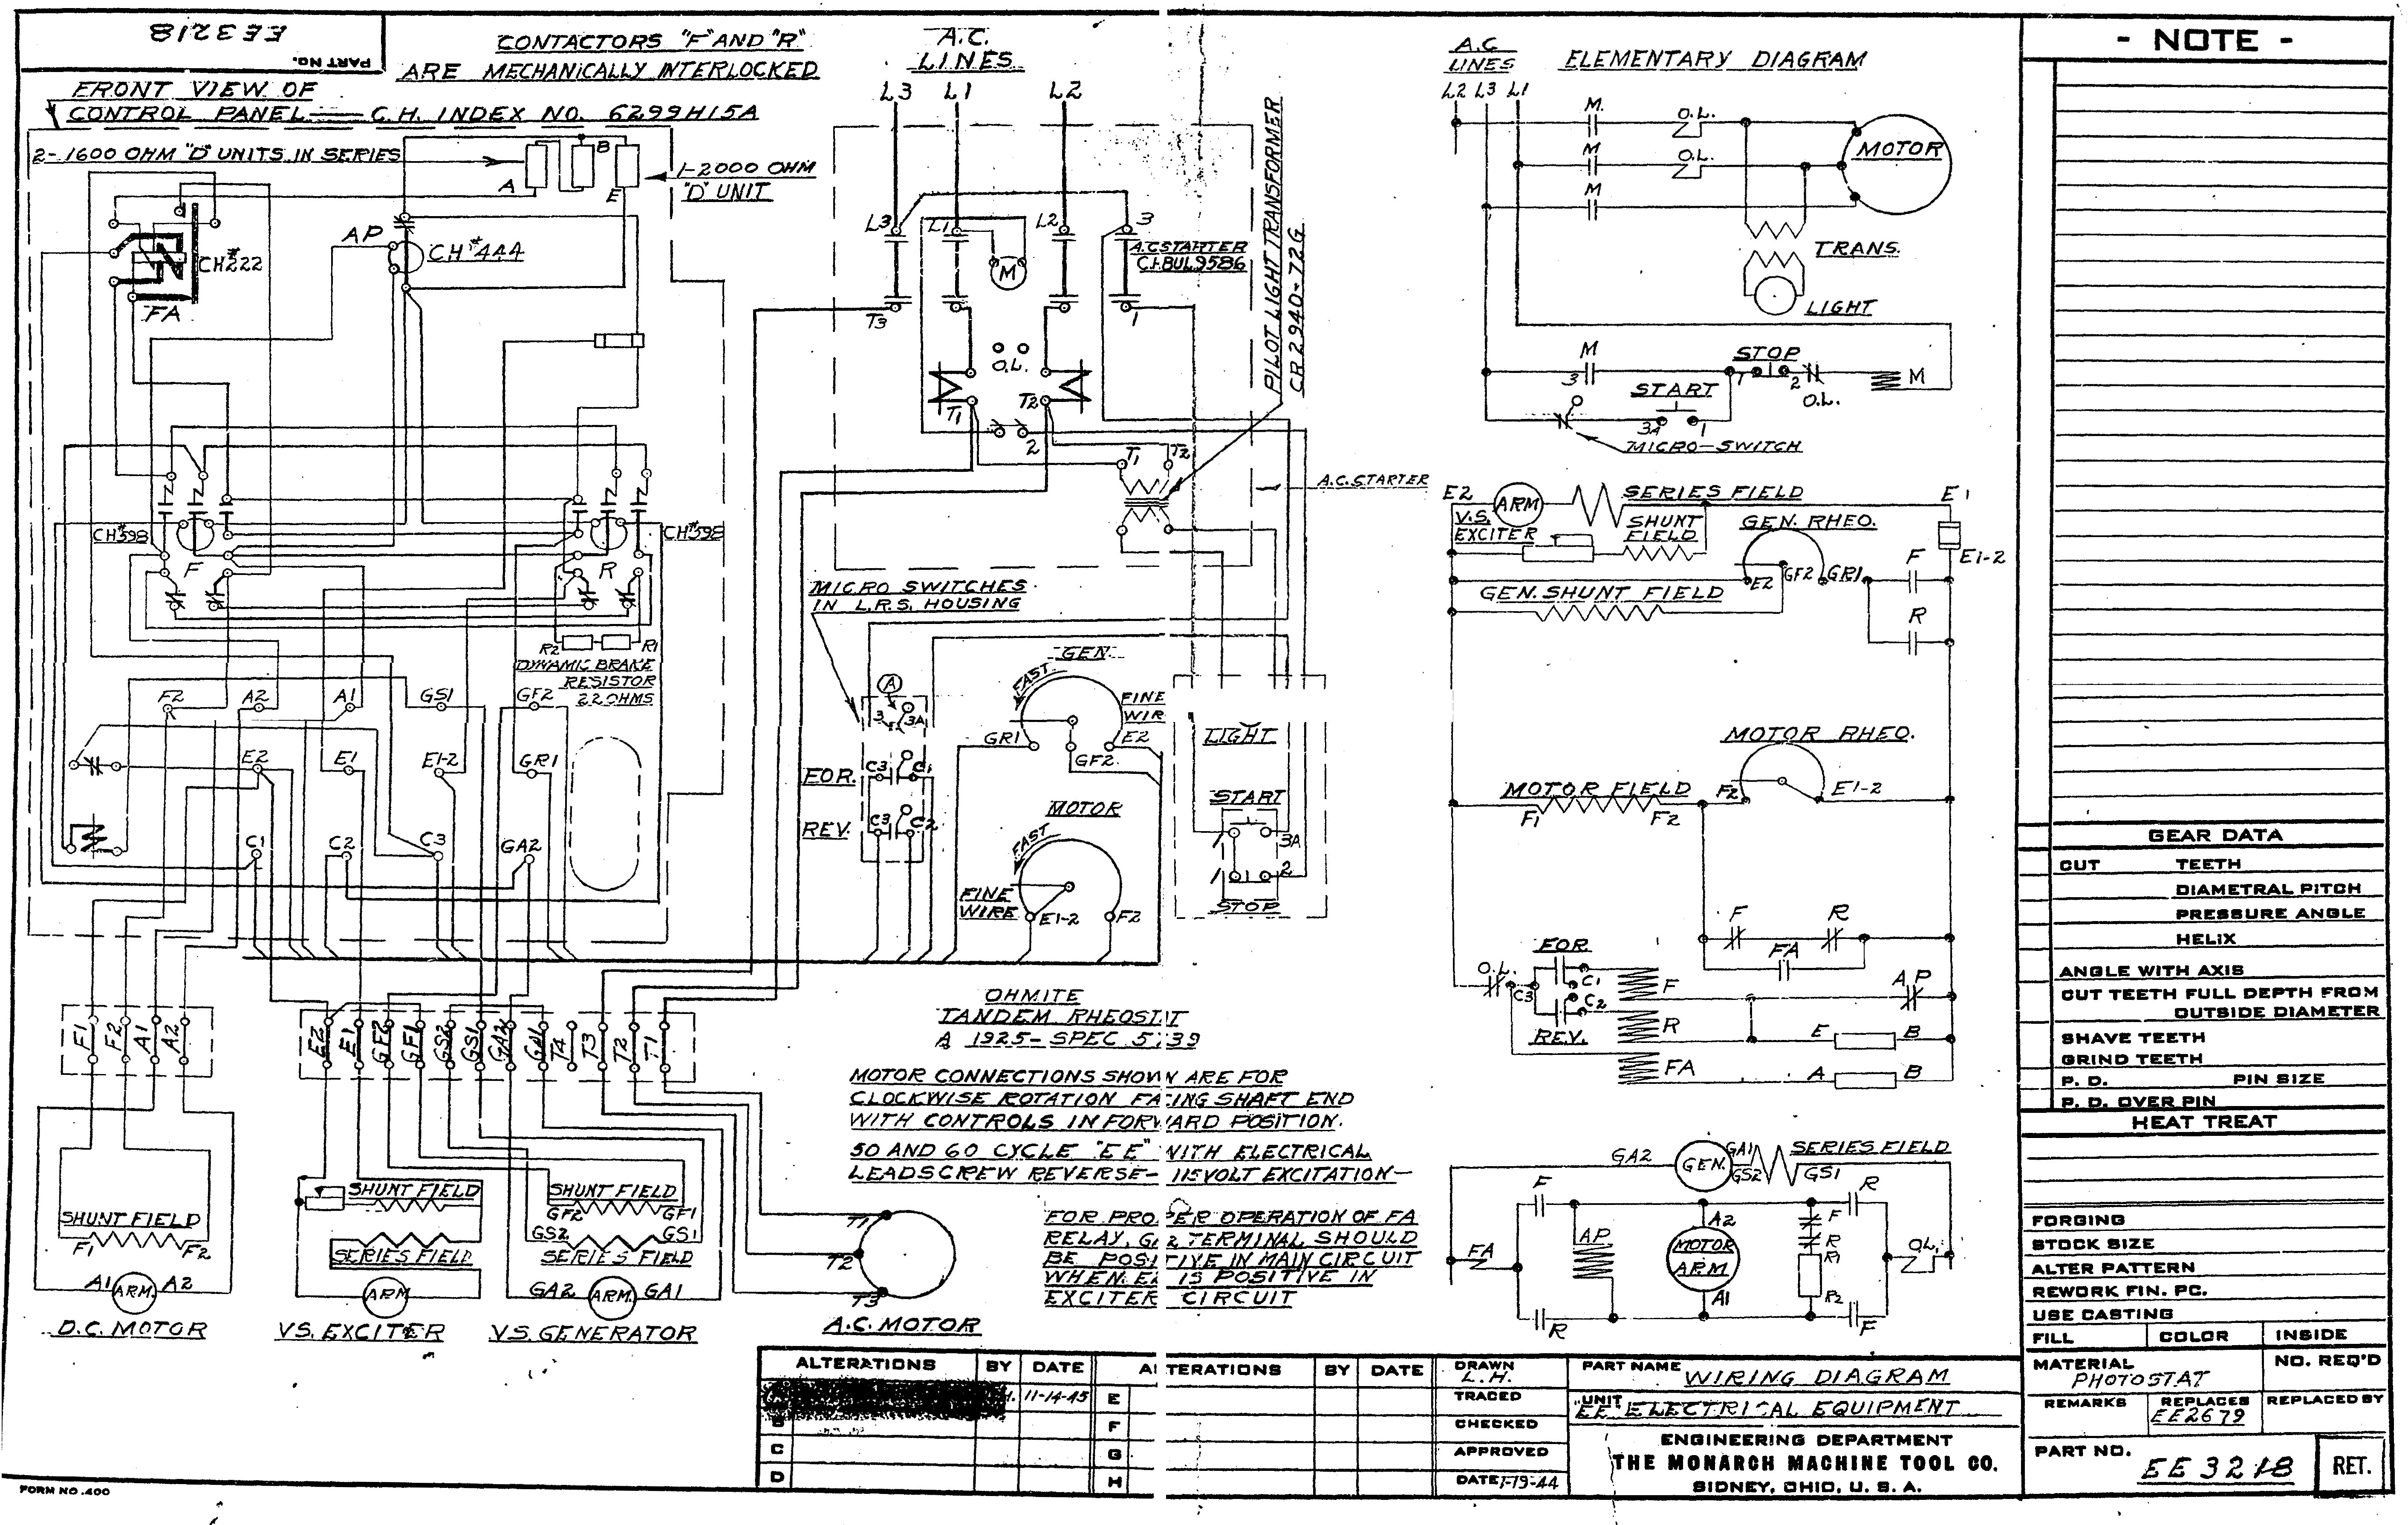 Phenomenal Engine Lathe Nomenclature Diagram Wiring Library Wiring Cloud Ostrrenstrafr09Org